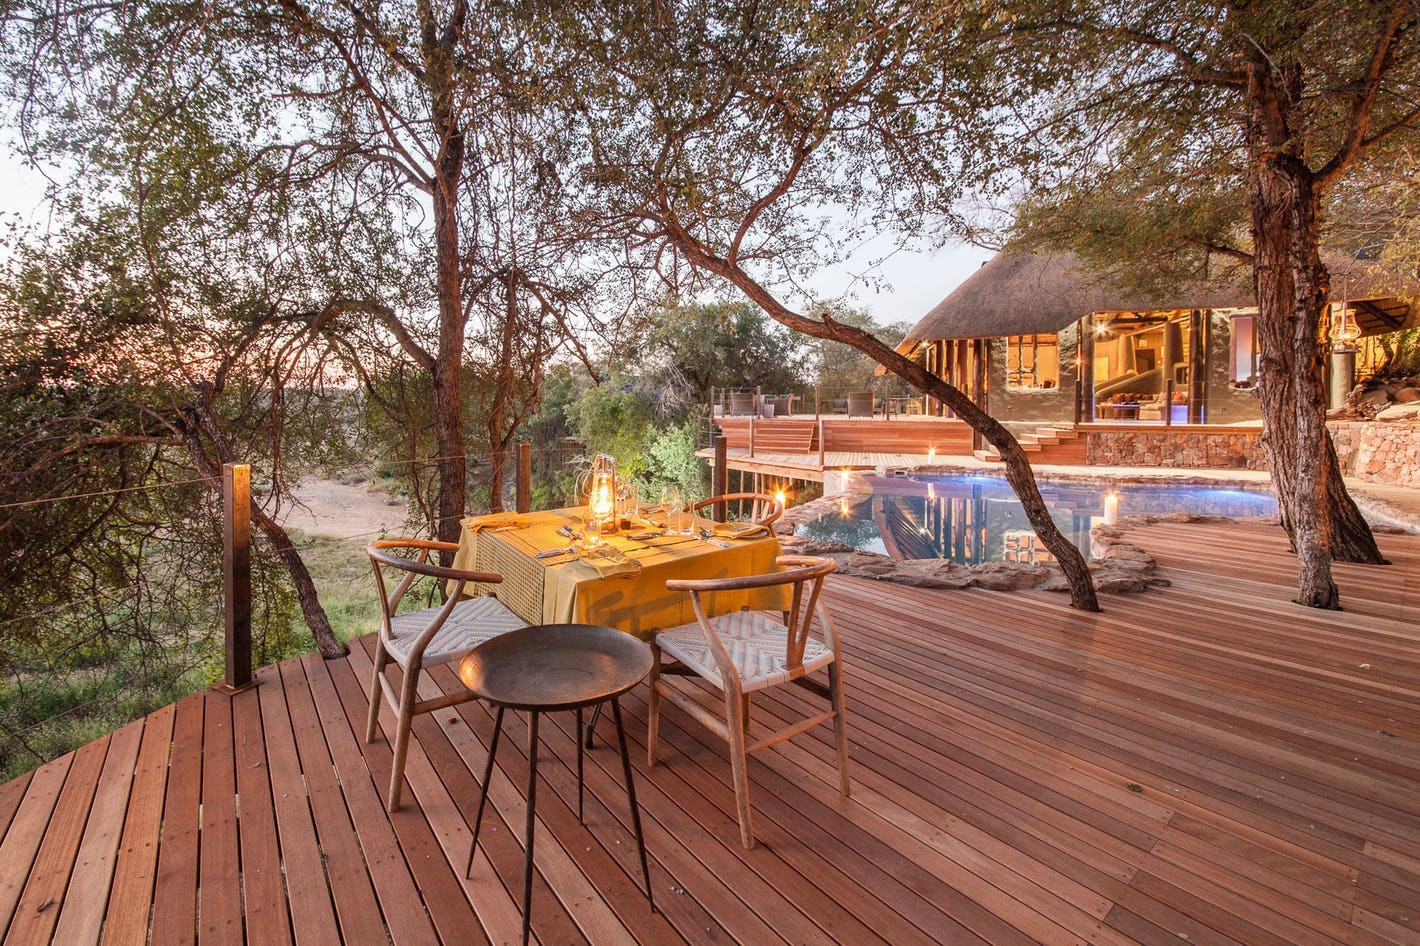 Plan an affordable South Africa safari